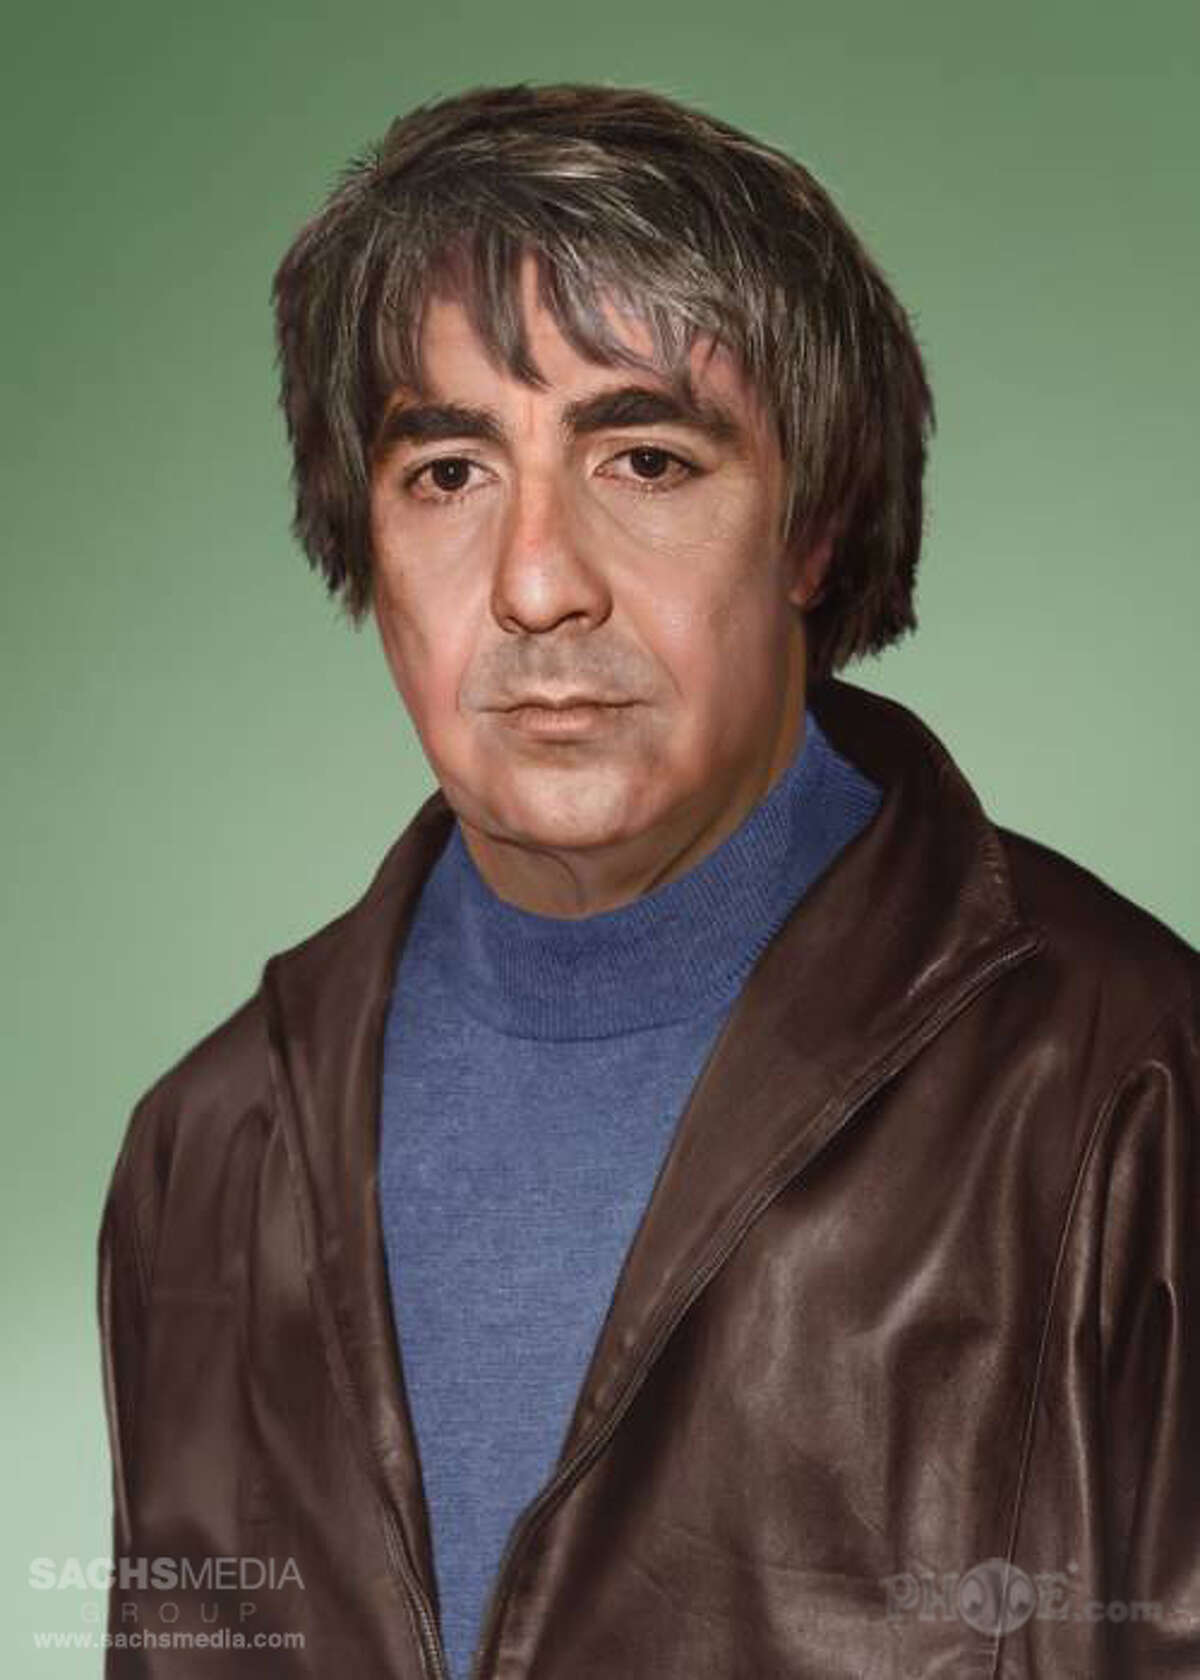 Keith Moon, Drummer The Who, Died 1978 at the age of 32Moon would be living on a ranch in West Texas with a cast of ex-Playboy bunnies, touring with The Who when he felt like it. He also owns his own beer, called Moon Brew.